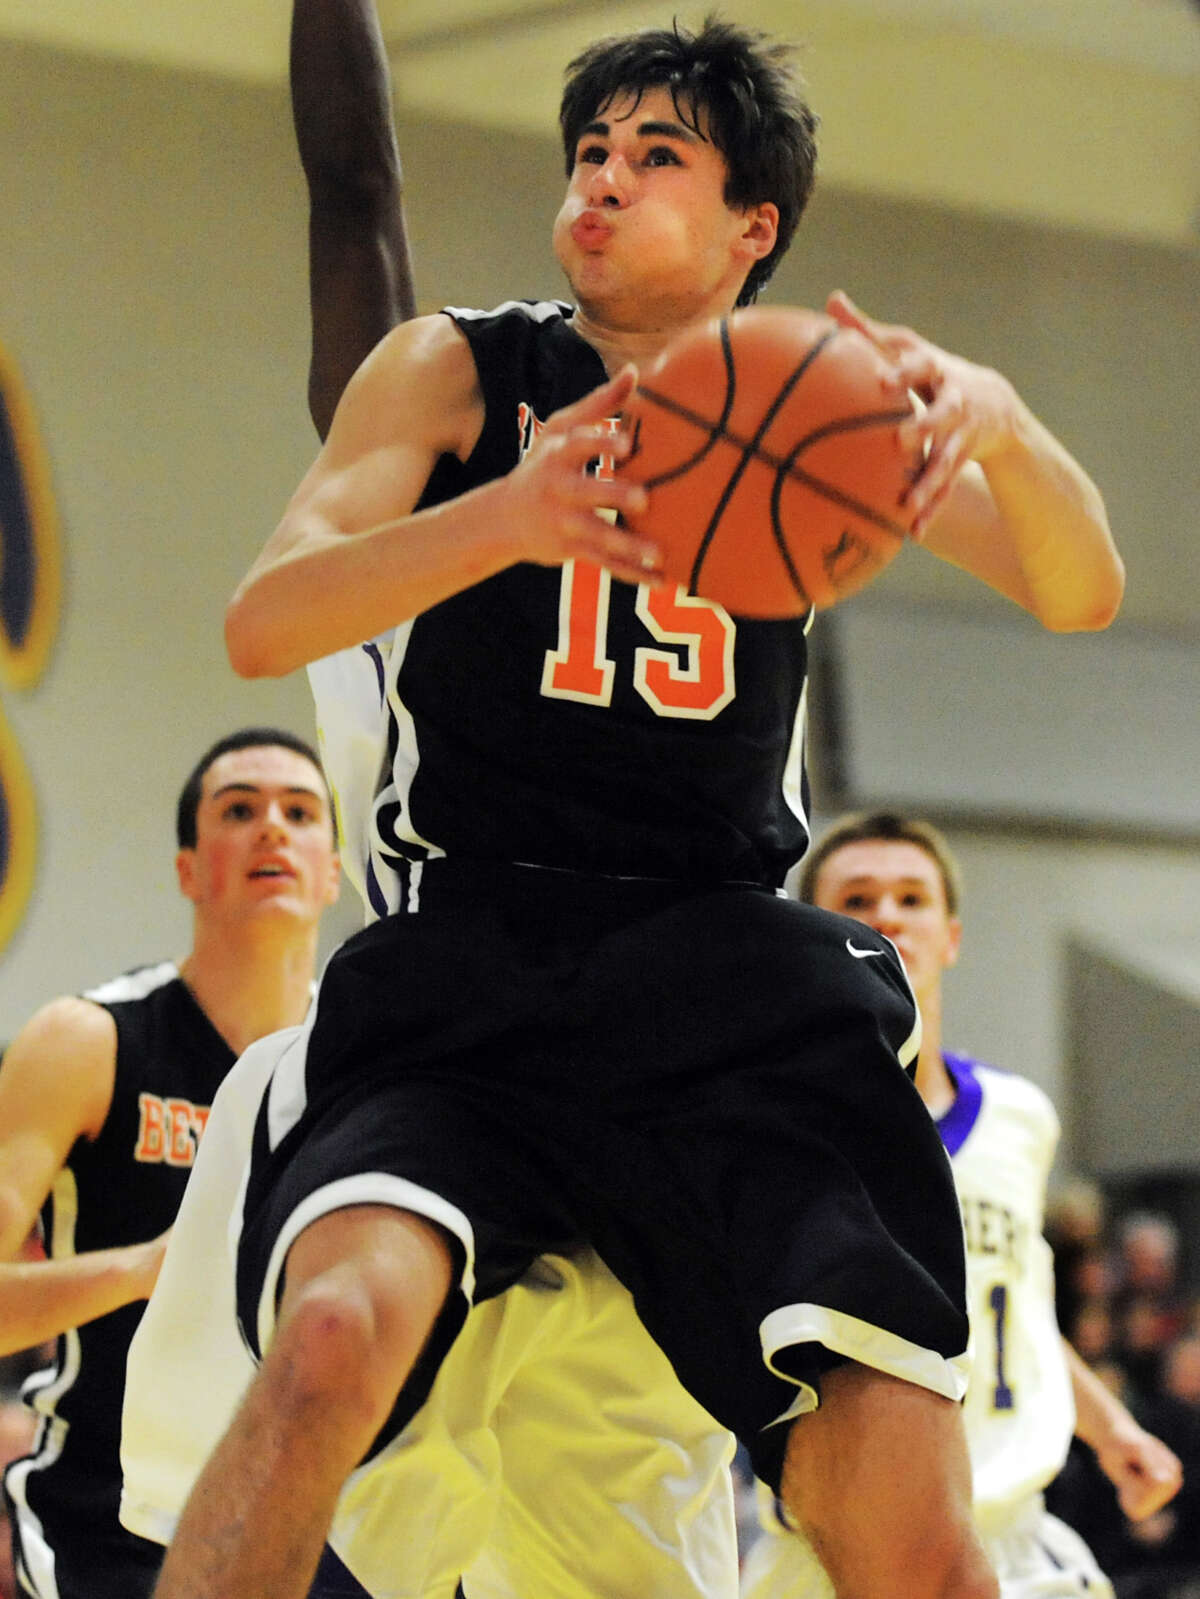 Bethlehem's Myles Bergere (15) grabs a rebound during their basketball game against CBA on Friday, Dec. 28, 2012, at Christian Brothers Academy in Colonie, N.Y. (Cindy Schultz / Times Union)